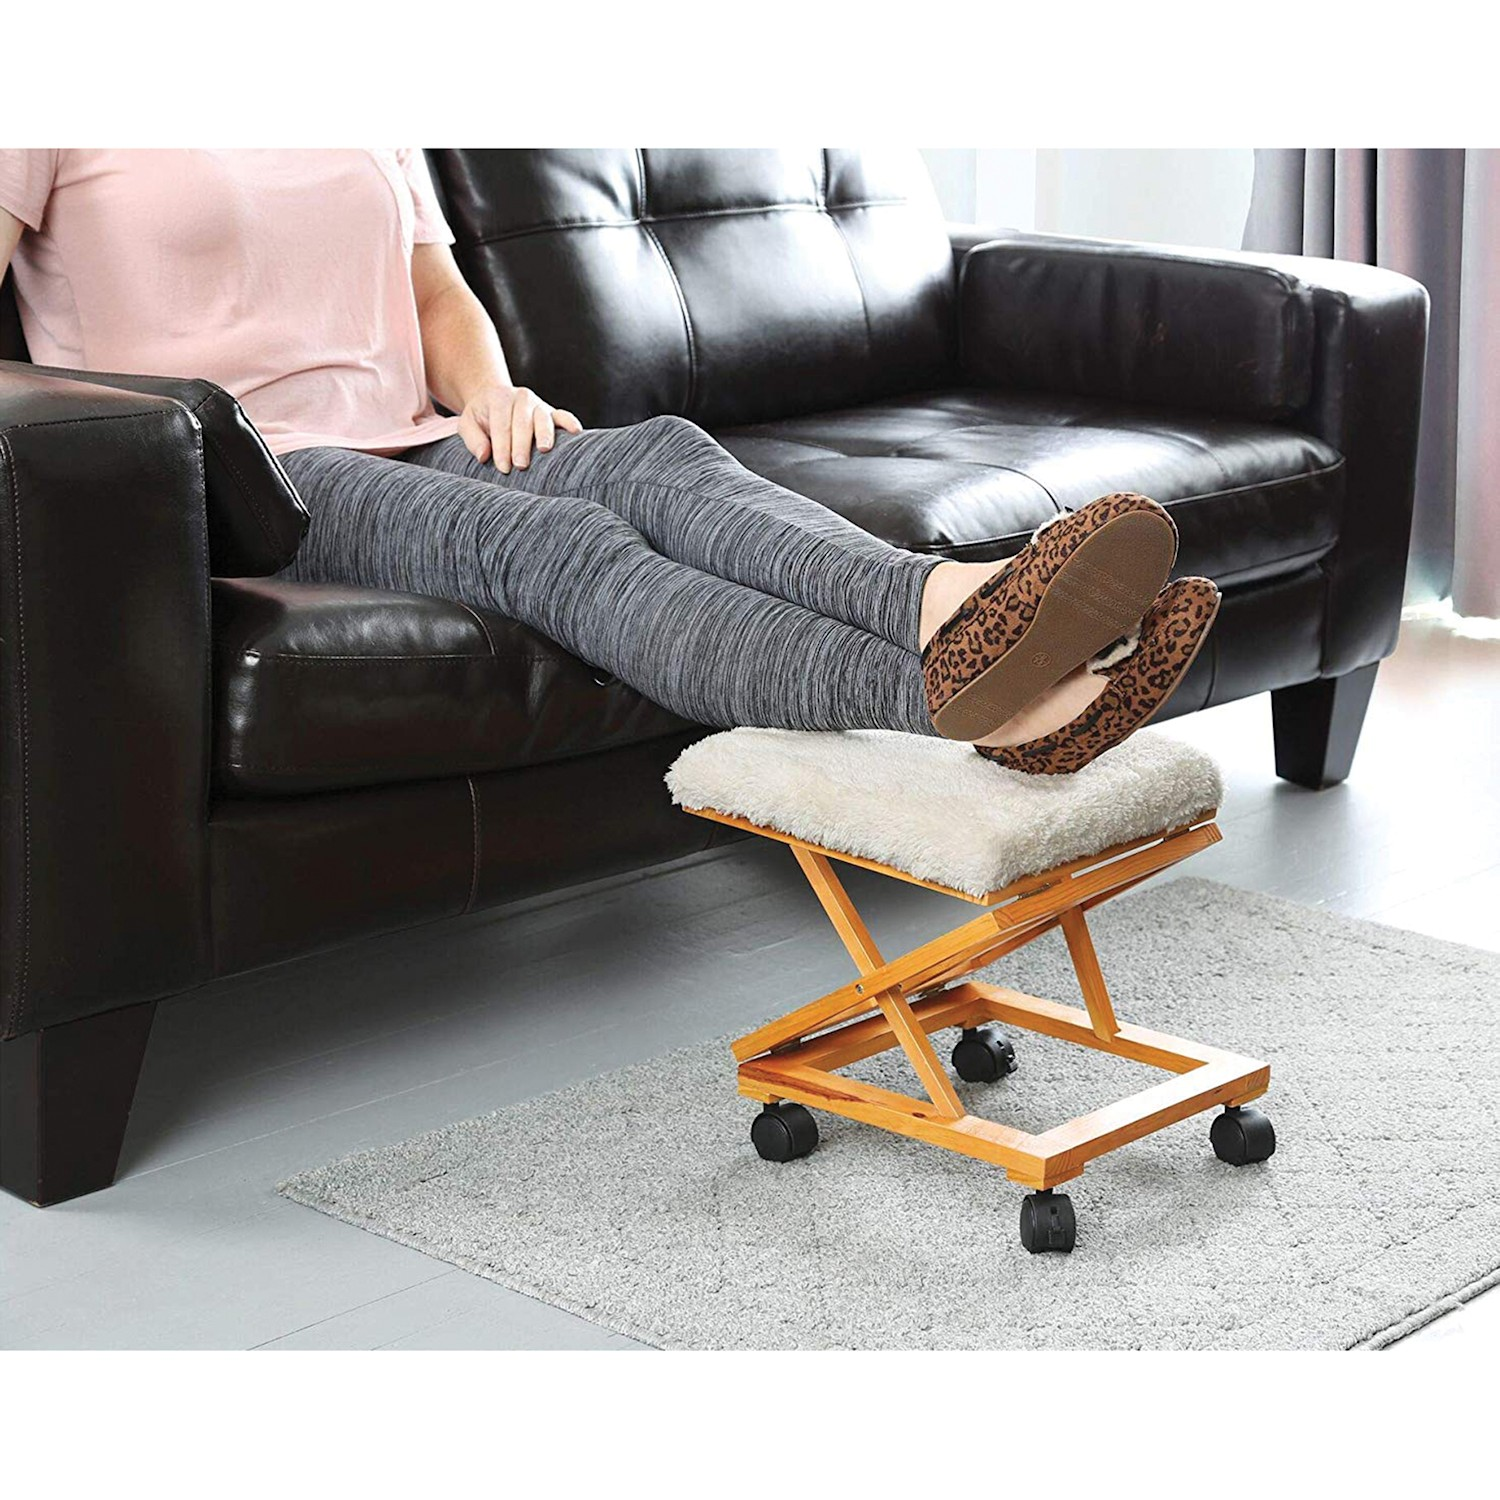 Brilliant Details About Etna Sherpa Top Foot Rest Rolling Collapsible Cushioned Foot Stool Ottoman Dailytribune Chair Design For Home Dailytribuneorg